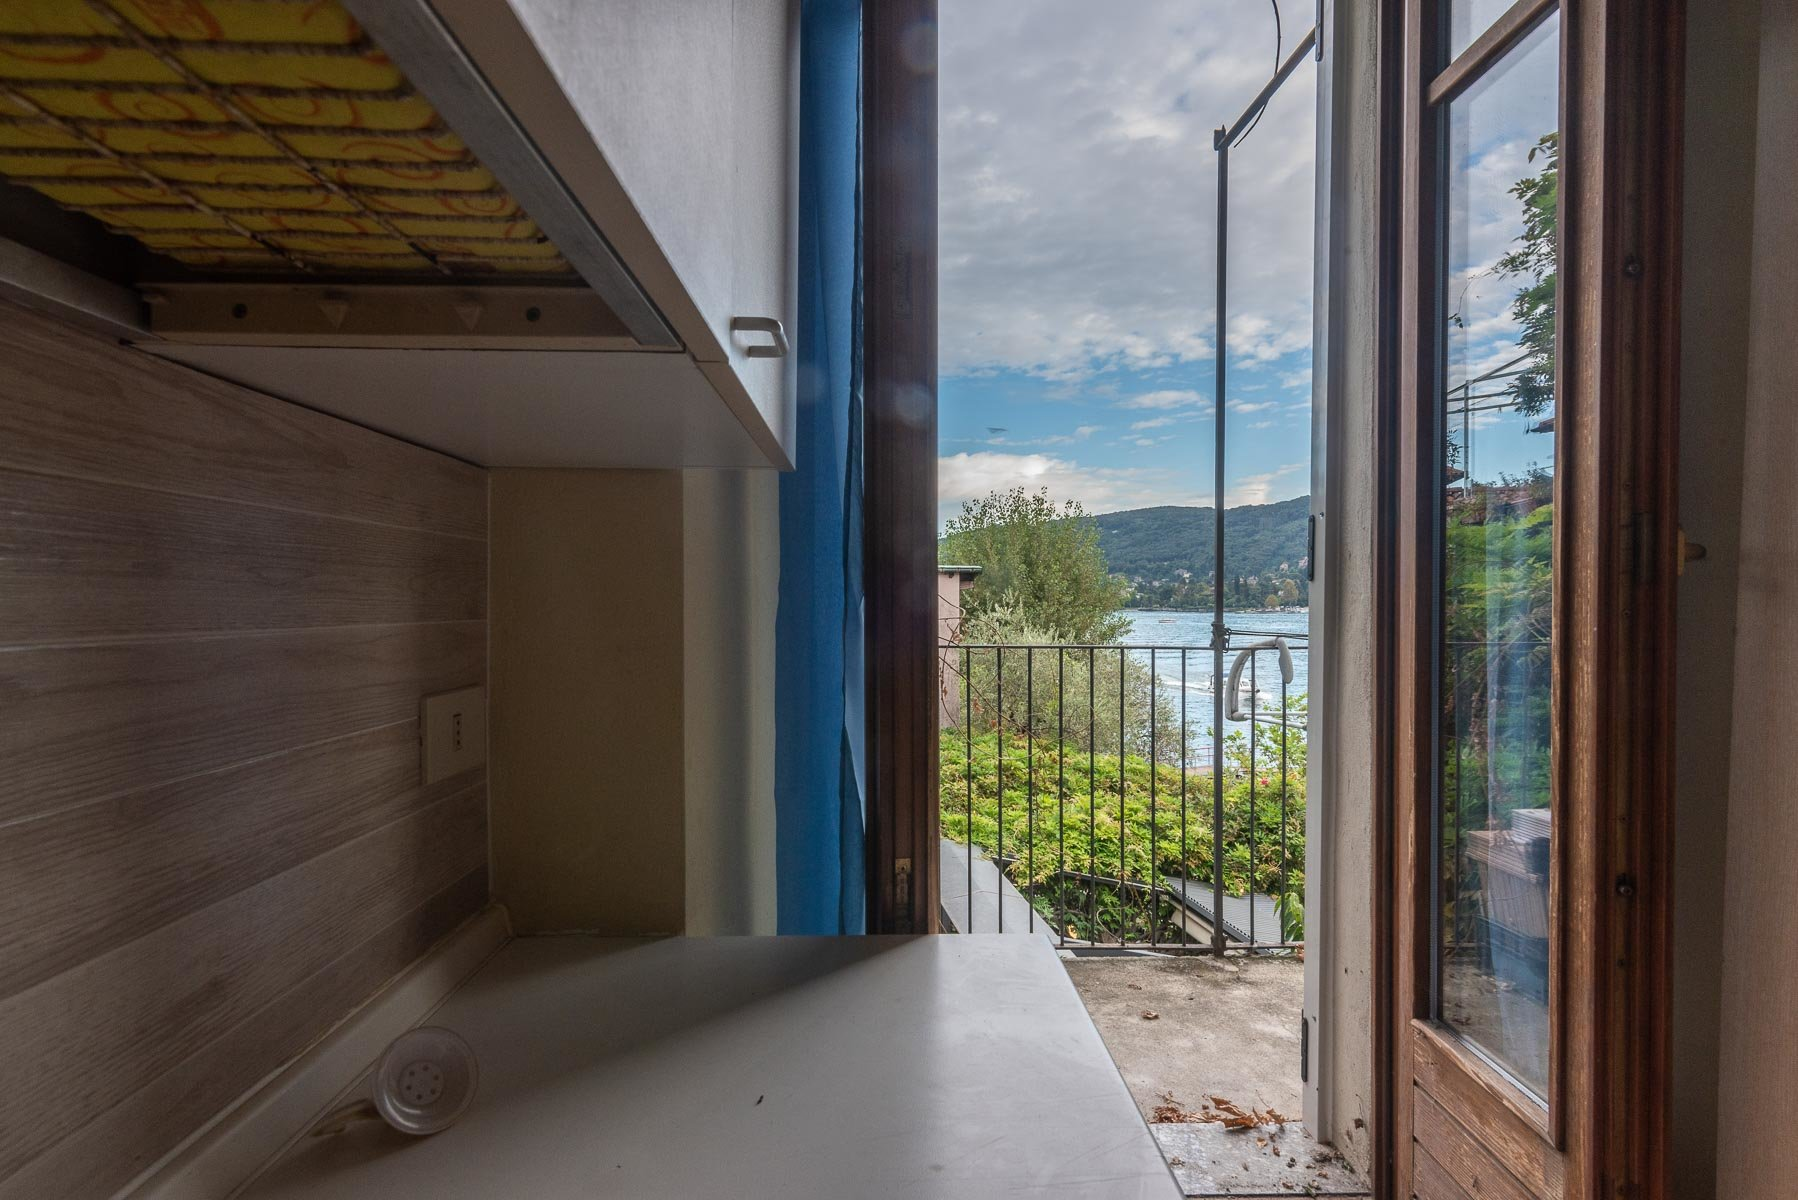 Apartment for sale in Pescatori Island, Stresa - kitchen with view